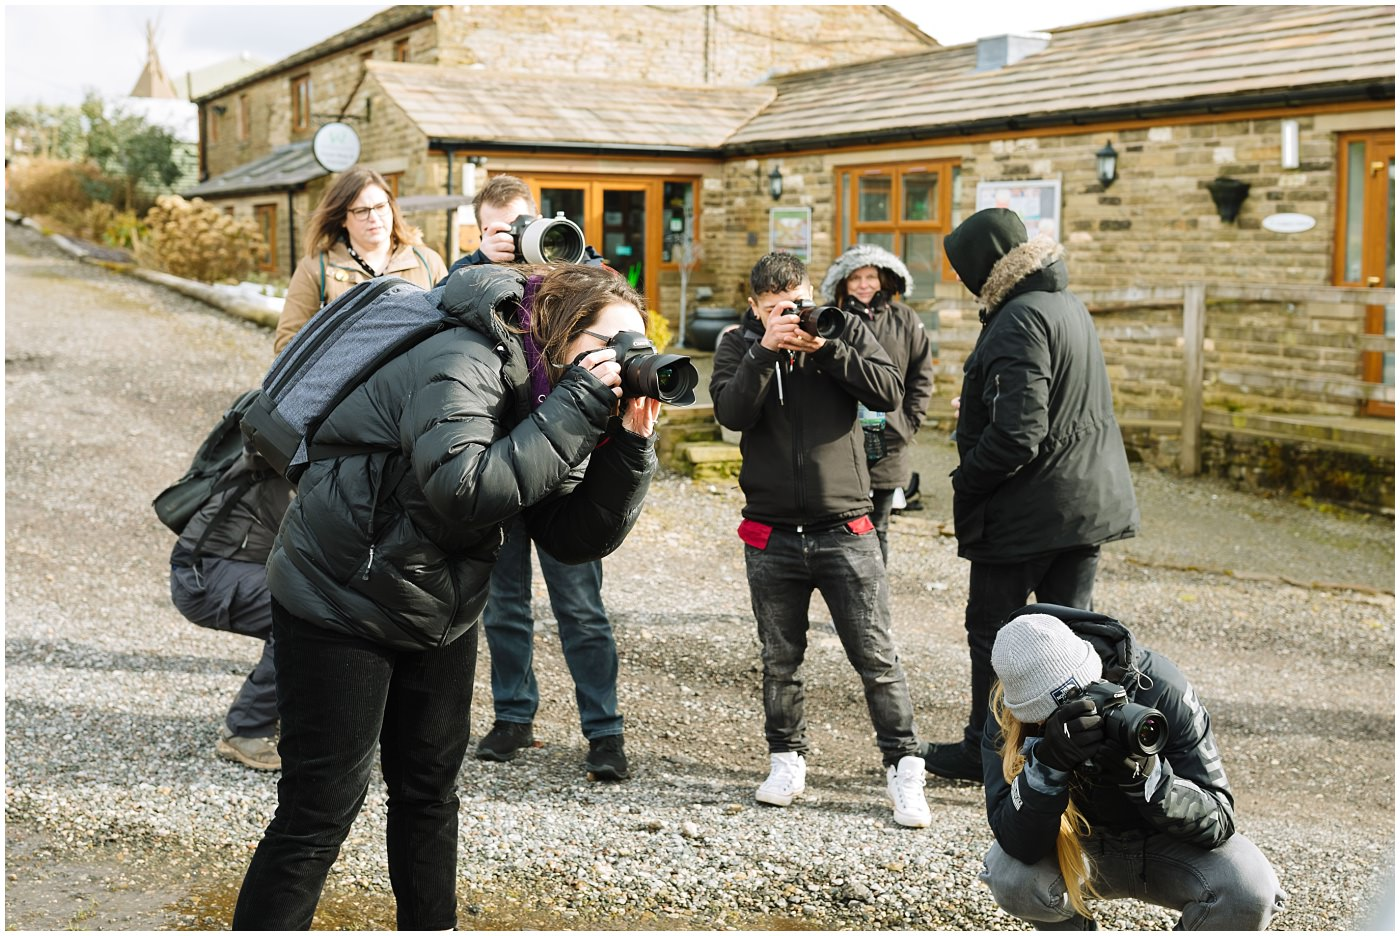 Photography Workshop at The Wellbeing Farm